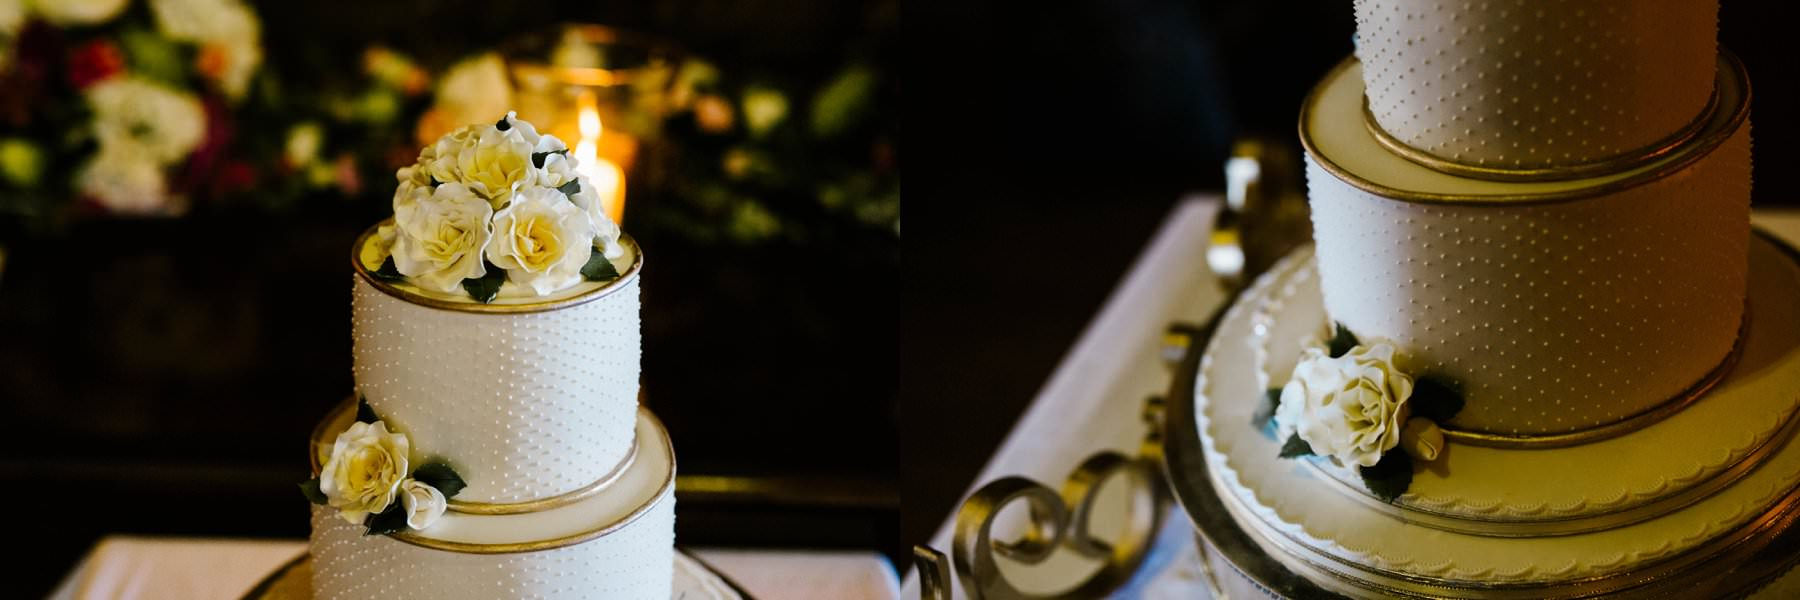 wedding cake castle leslie wedding photographer ireland